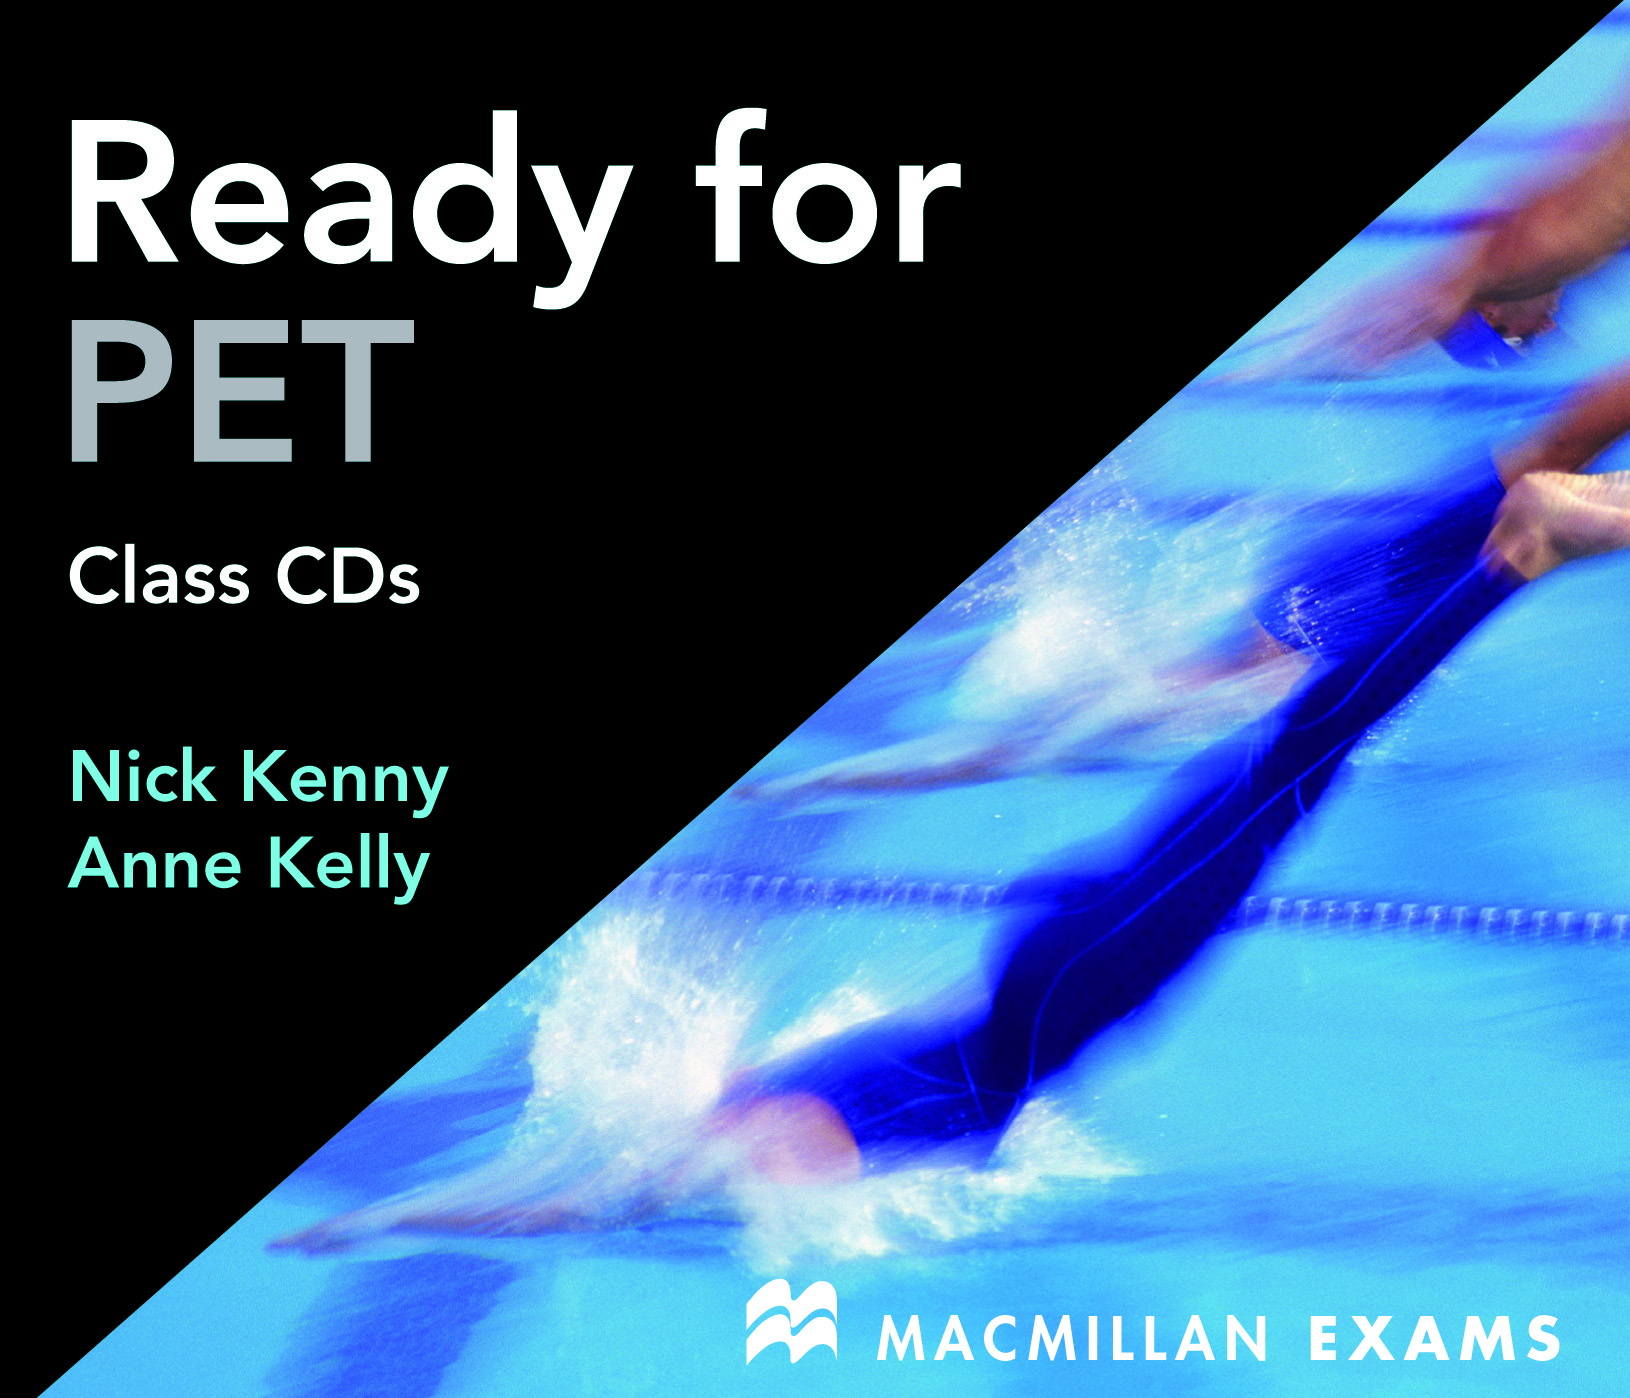 New Ready for PET Class CD